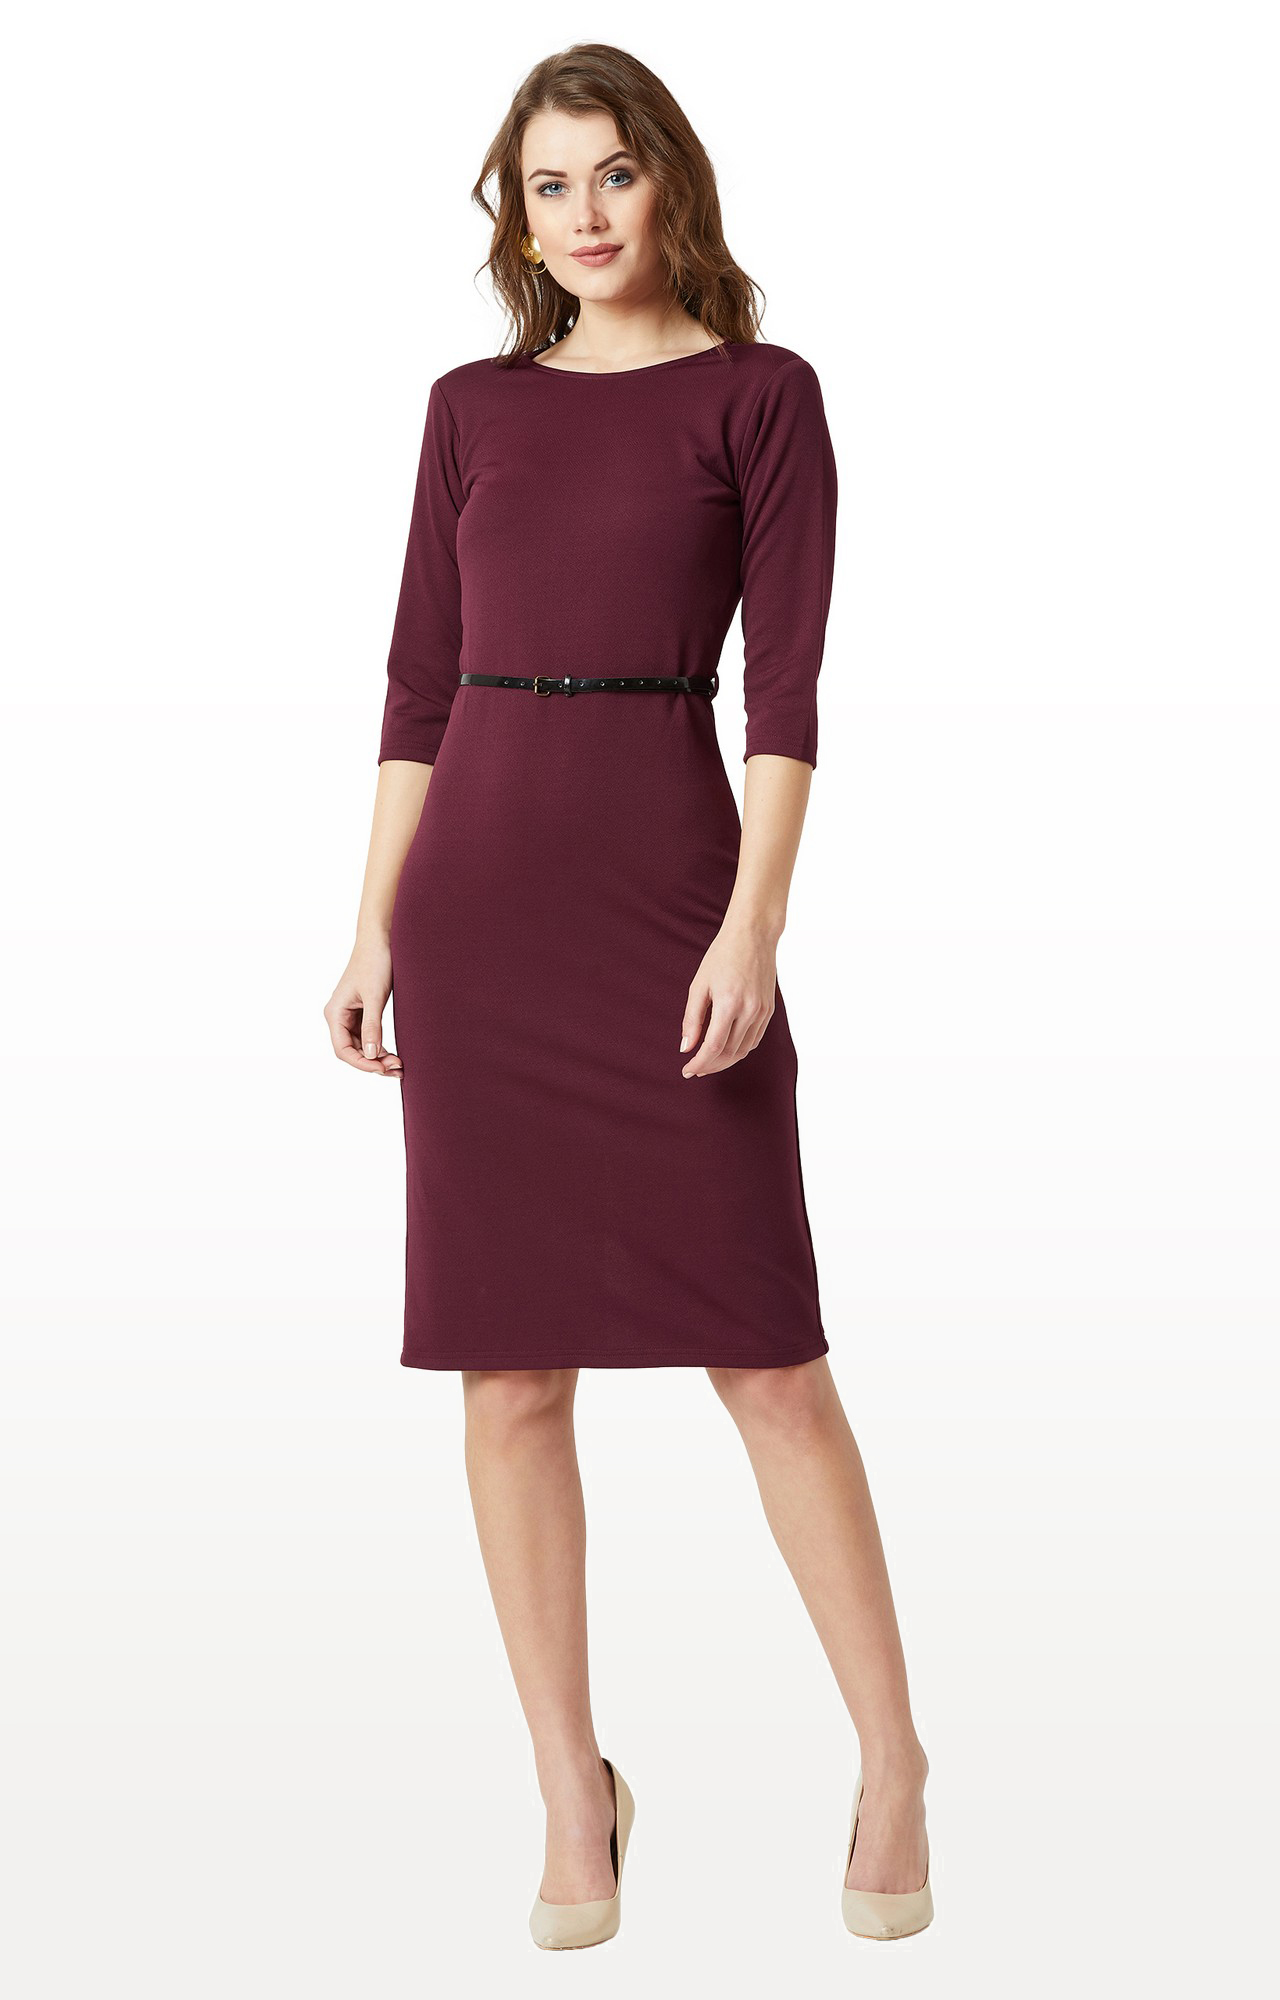 MISS CHASE | Wine Solid Belted Bodycon Midi Dress